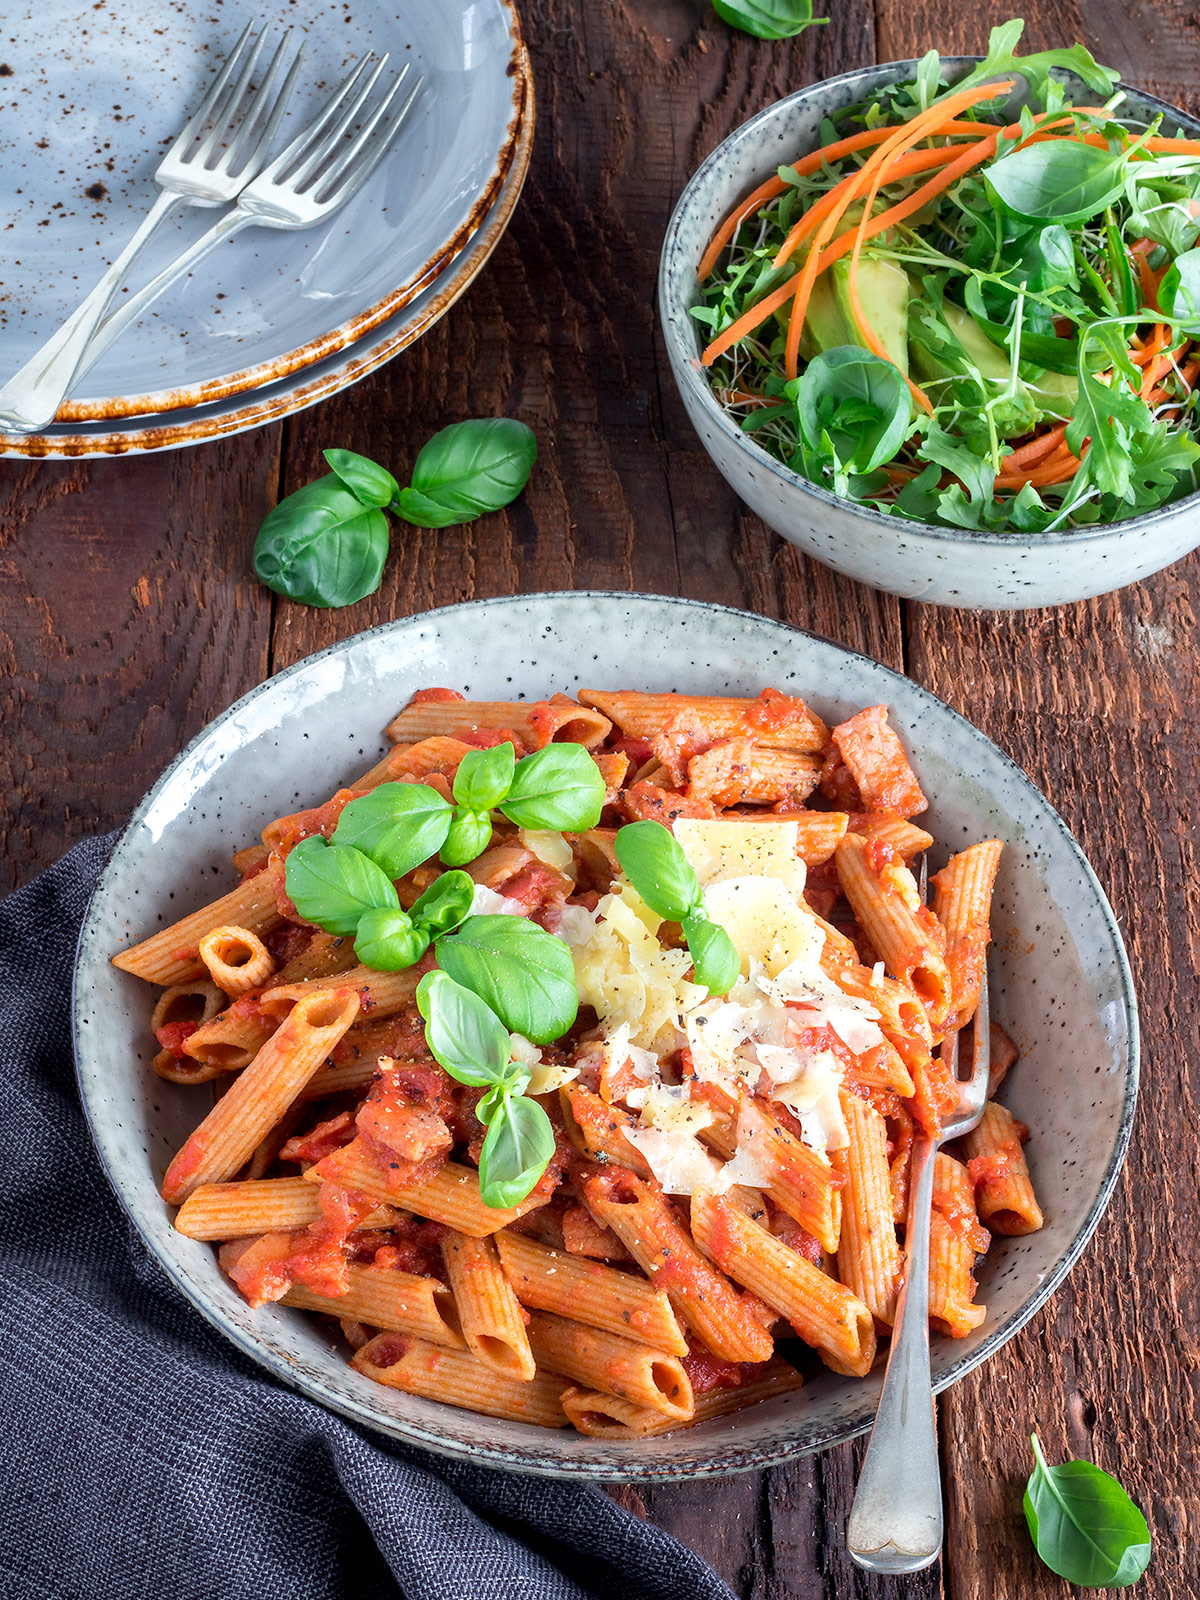 Tomato and bacon pasta is simple home cooking. It's a great meal for busy weeknights. 